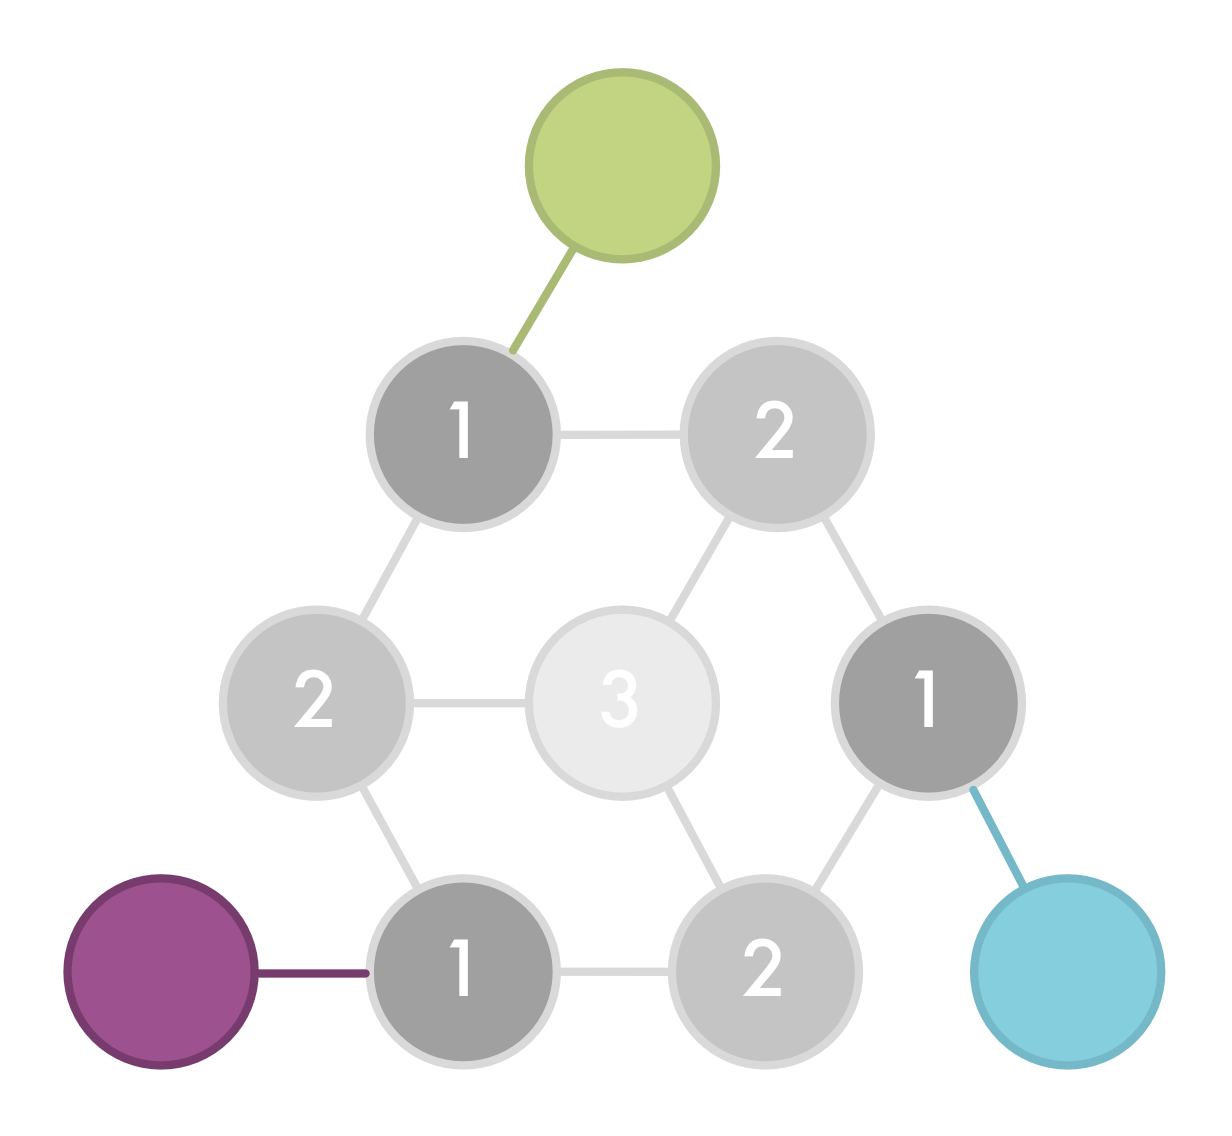 Triangular array of connected nodes